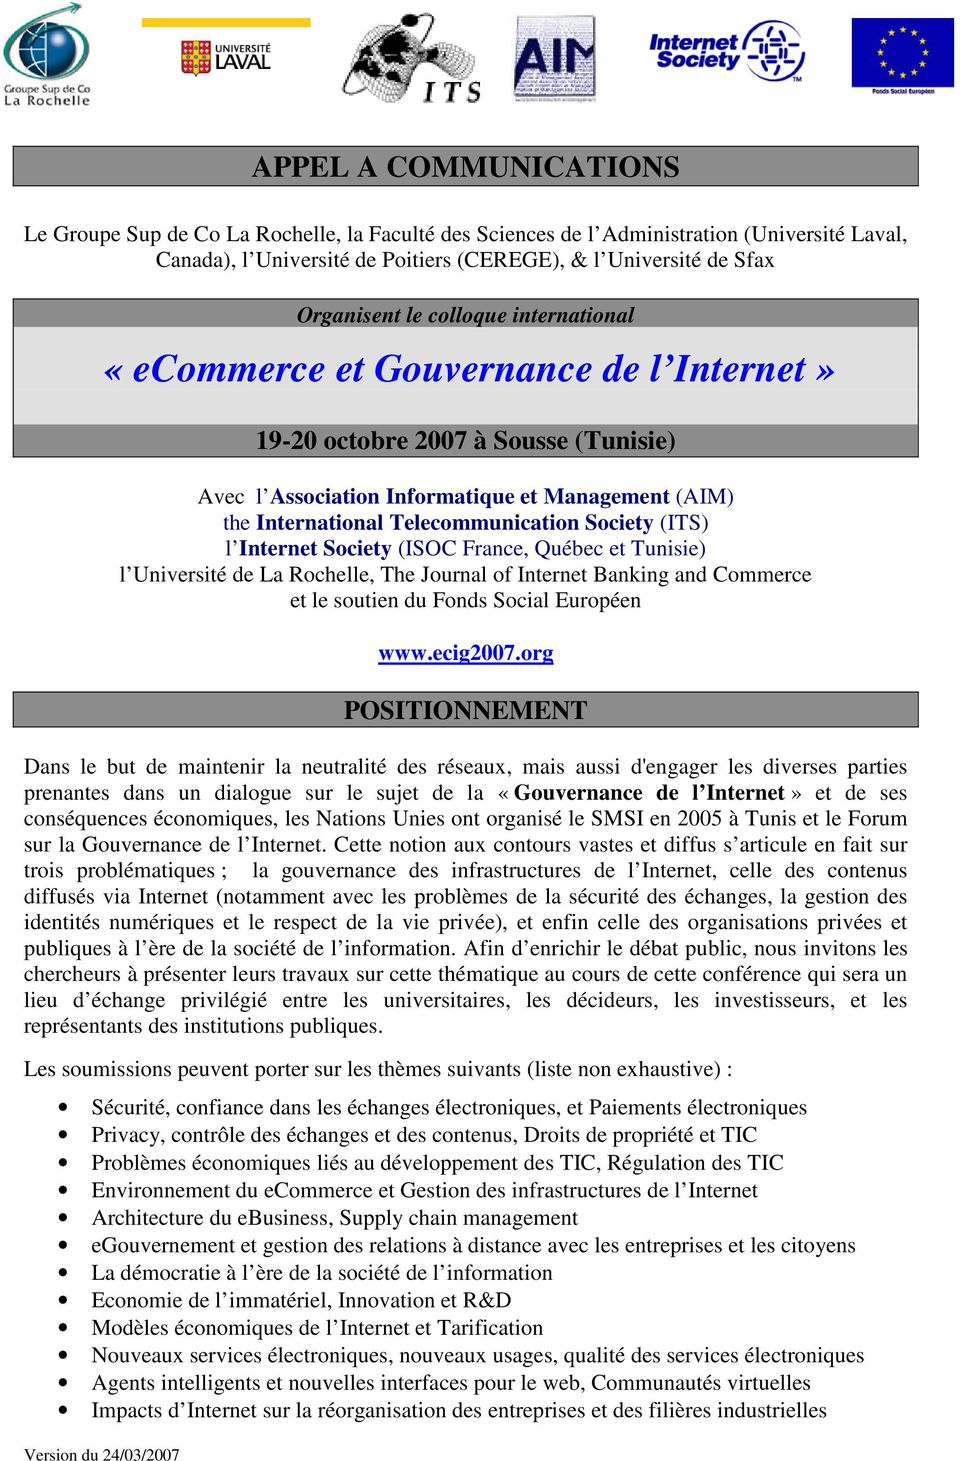 Telecommunication Society (ITS) l Internet Society (ISOC France, Québec et Tunisie) l Université de La Rochelle, The Journal of Internet Banking and Commerce et le soutien du Fonds Social Européen